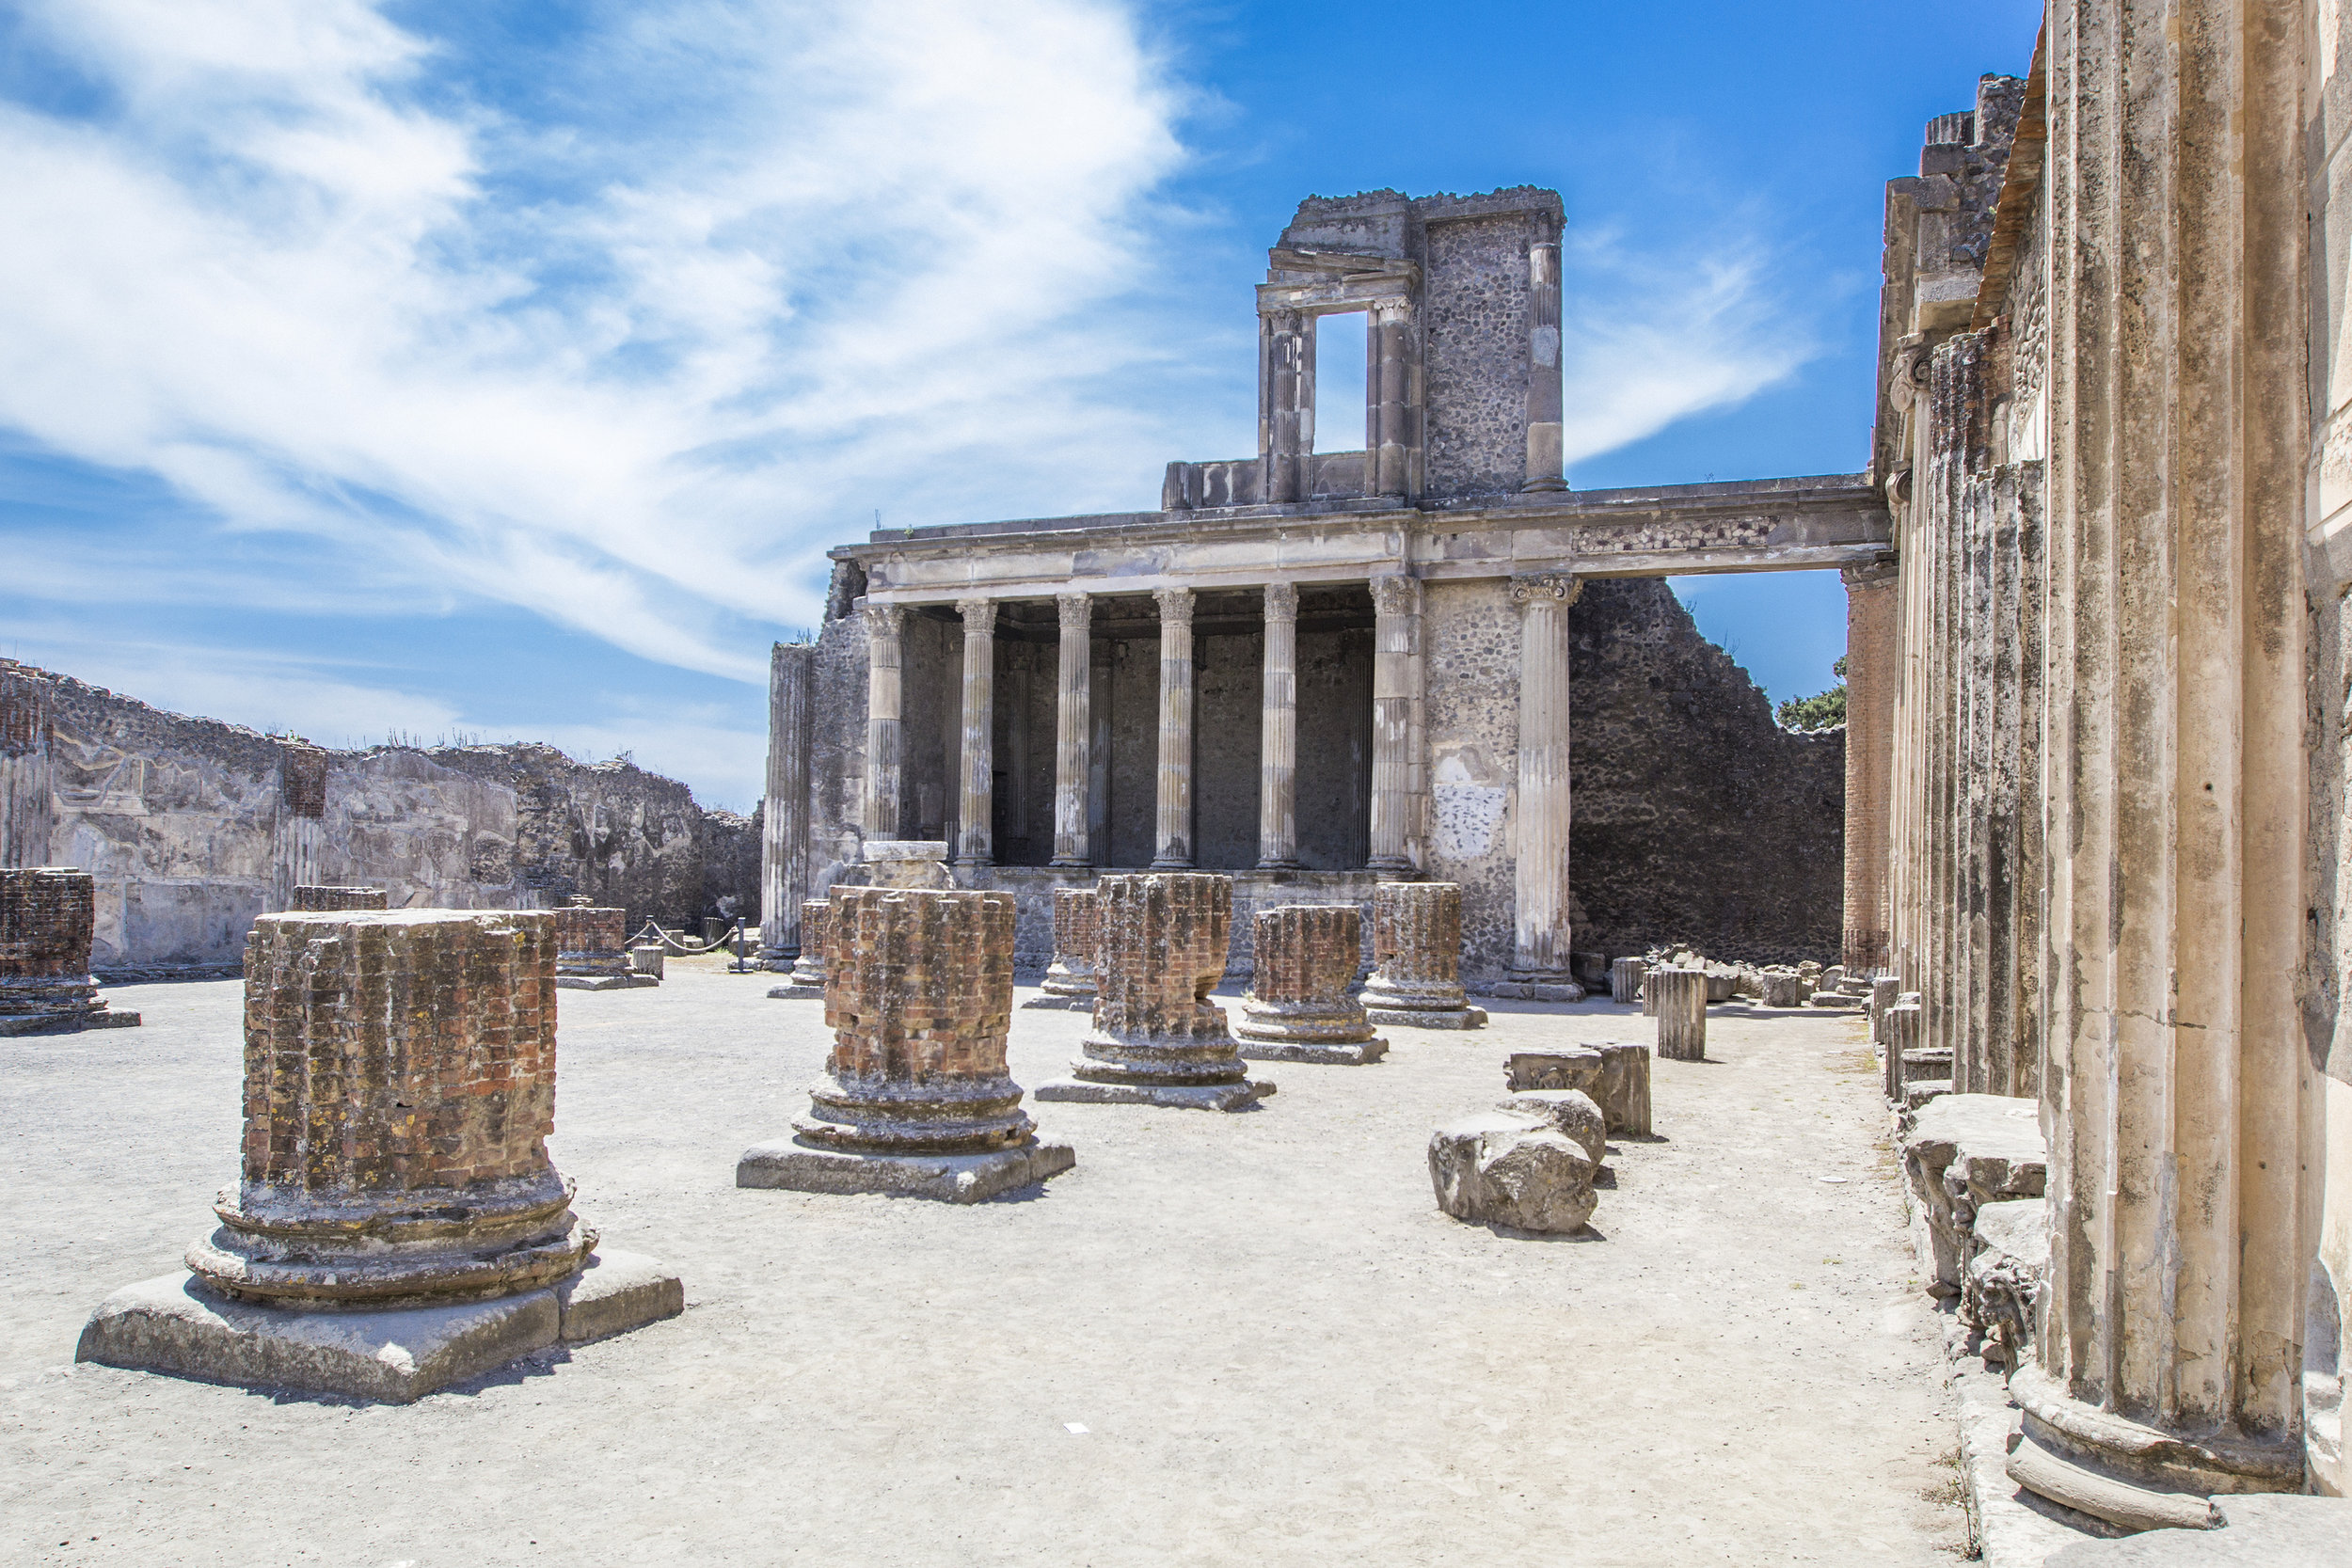 bigstock-Ancient-Ruins-In-Pompeii--Col-226595698.jpg